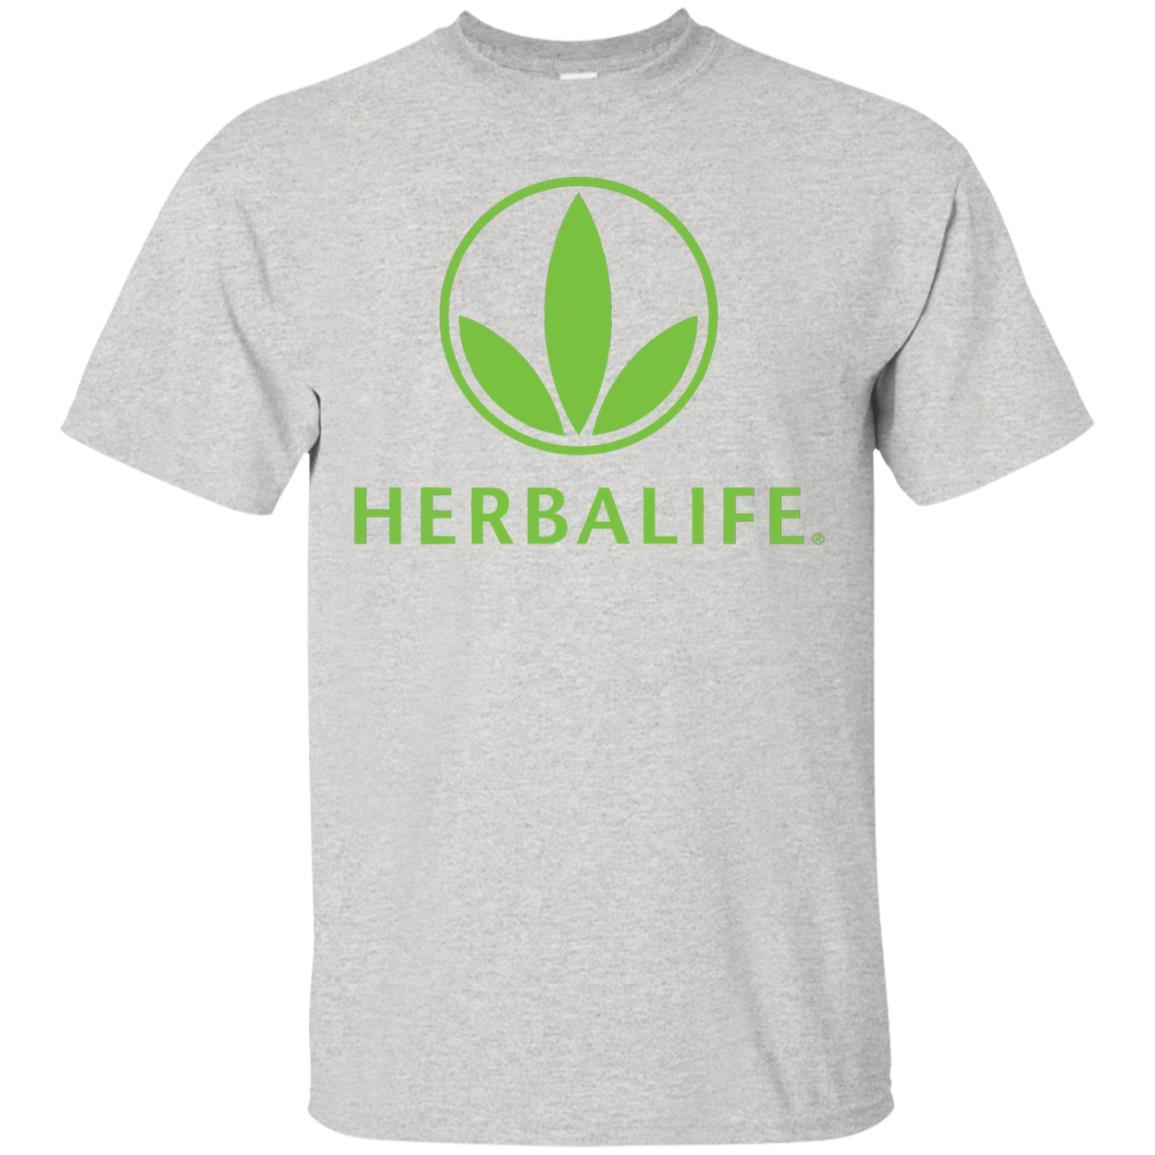 HERBALIFE Logo T-Shirt Style / Color / Size